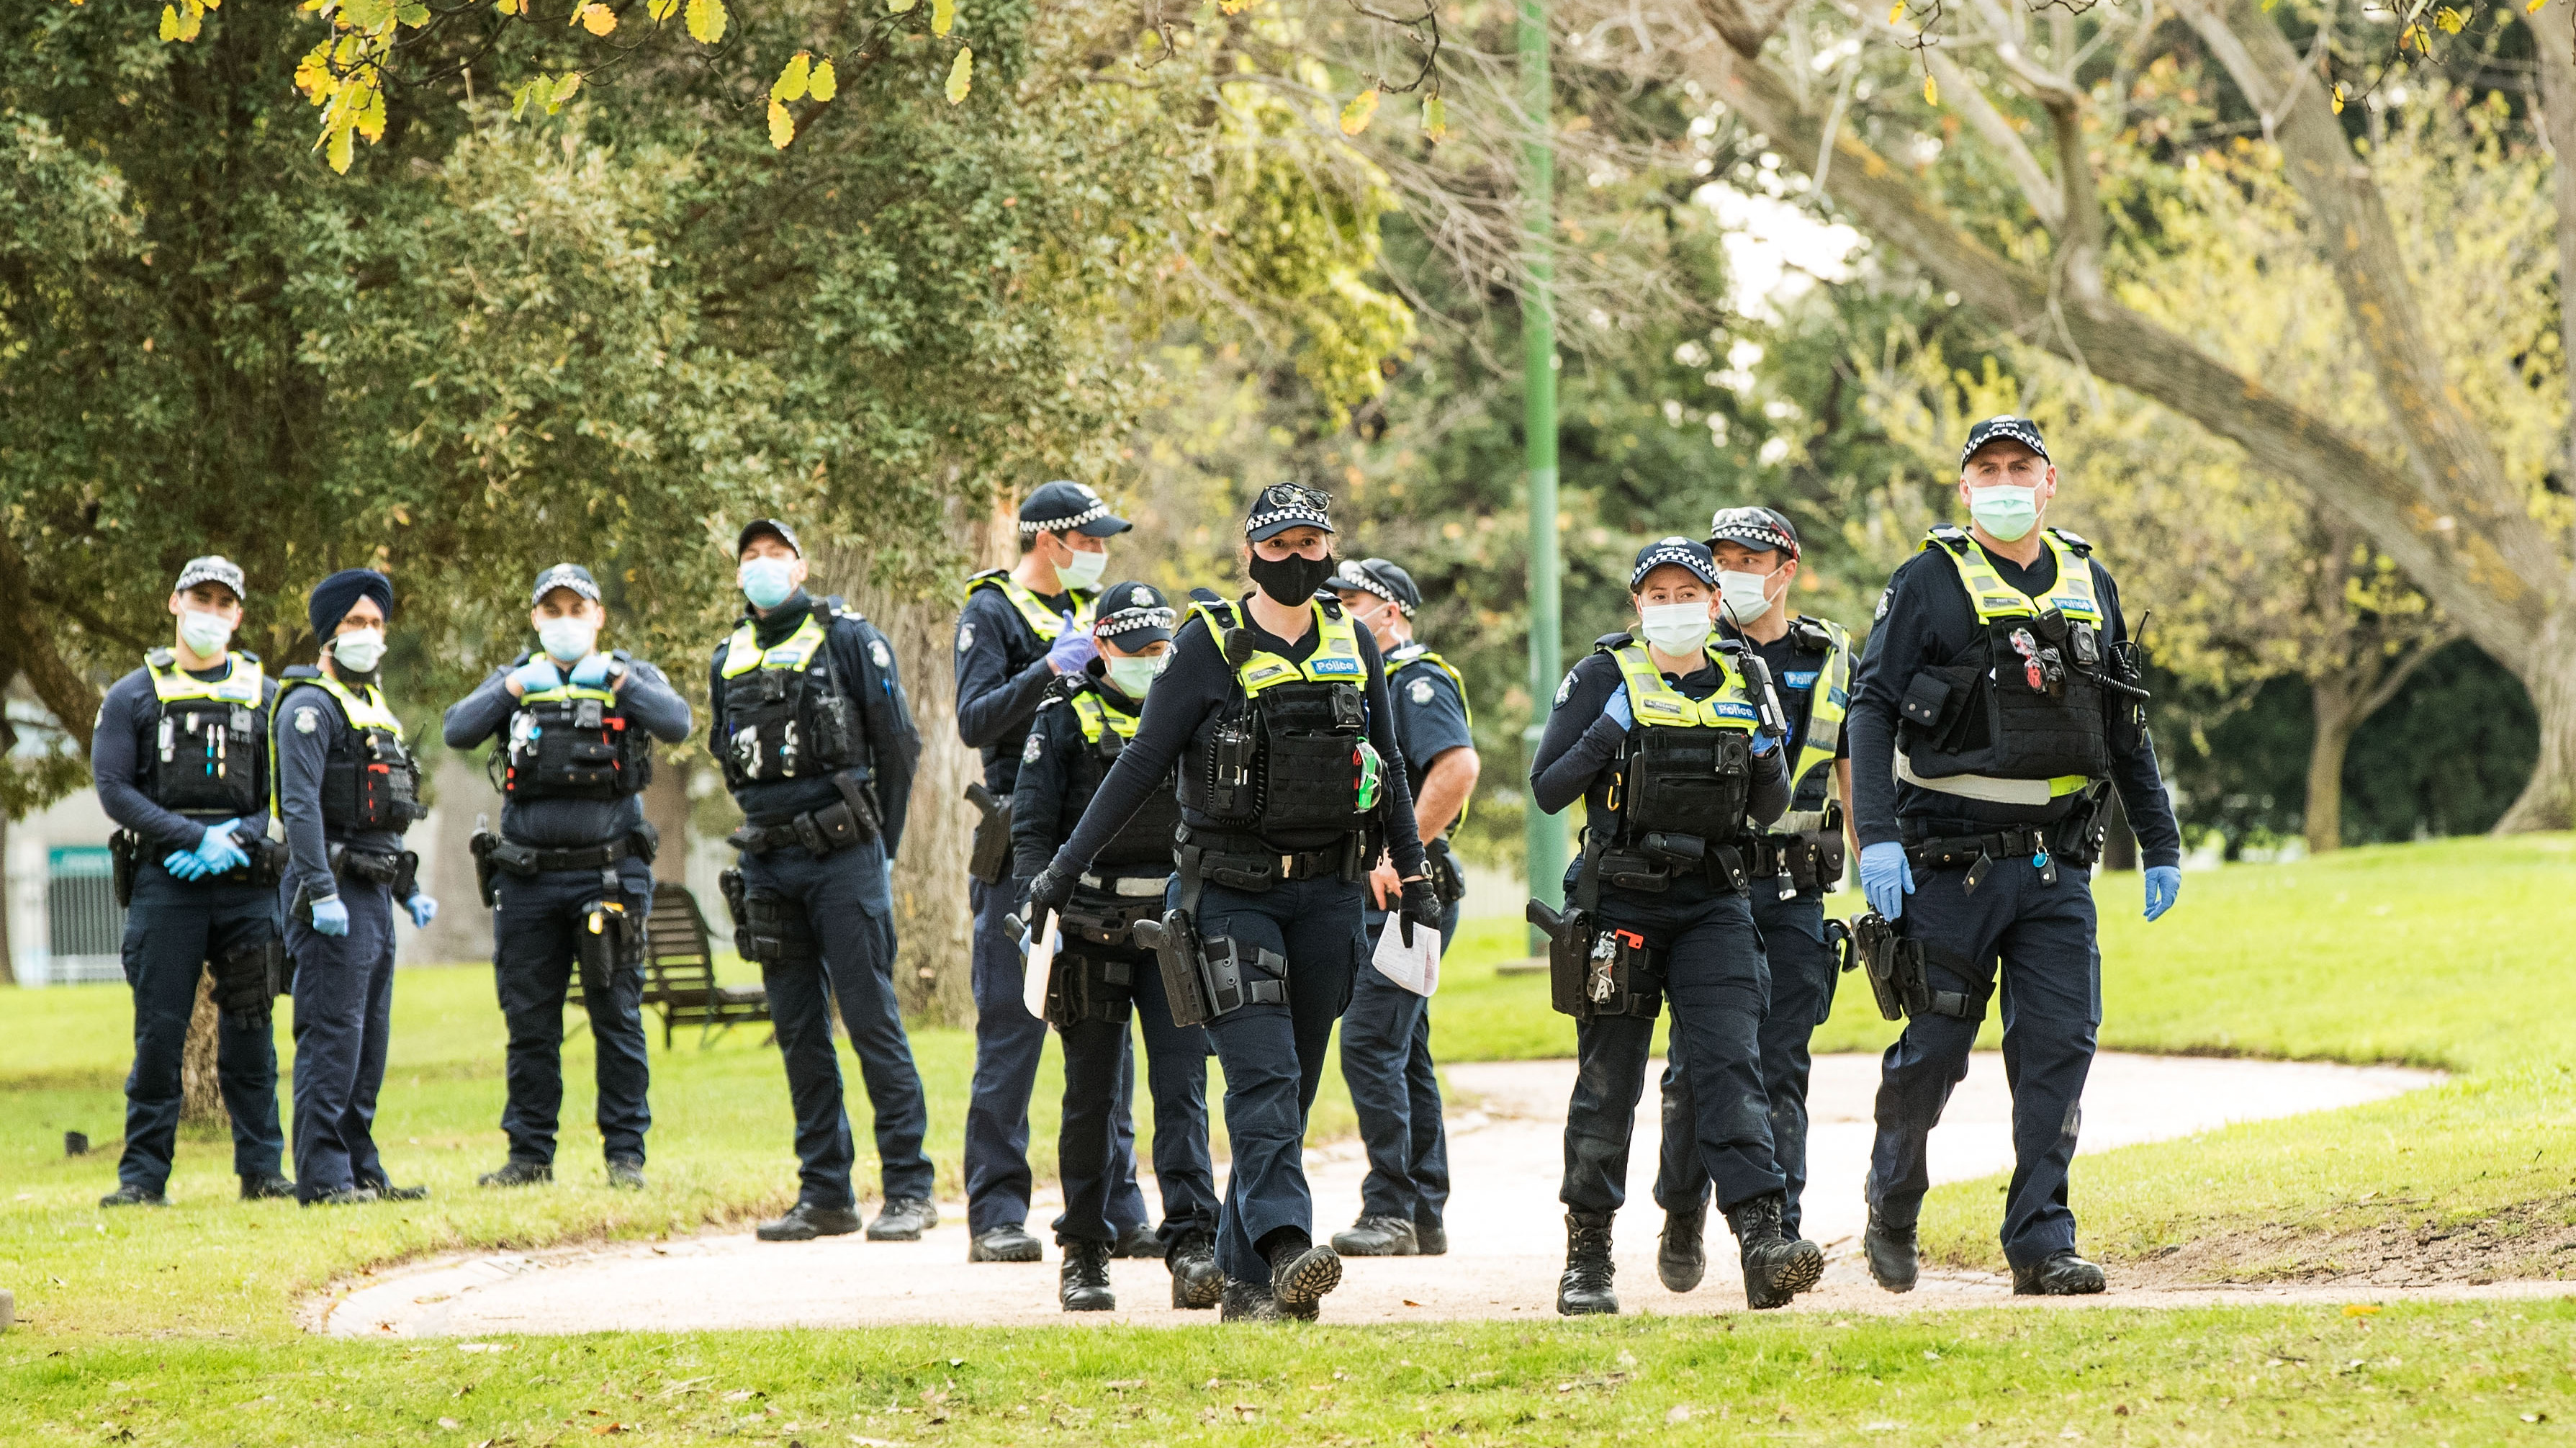 A heavy Police presence is seen at Government House on August 31, 2021 in Melbourne.